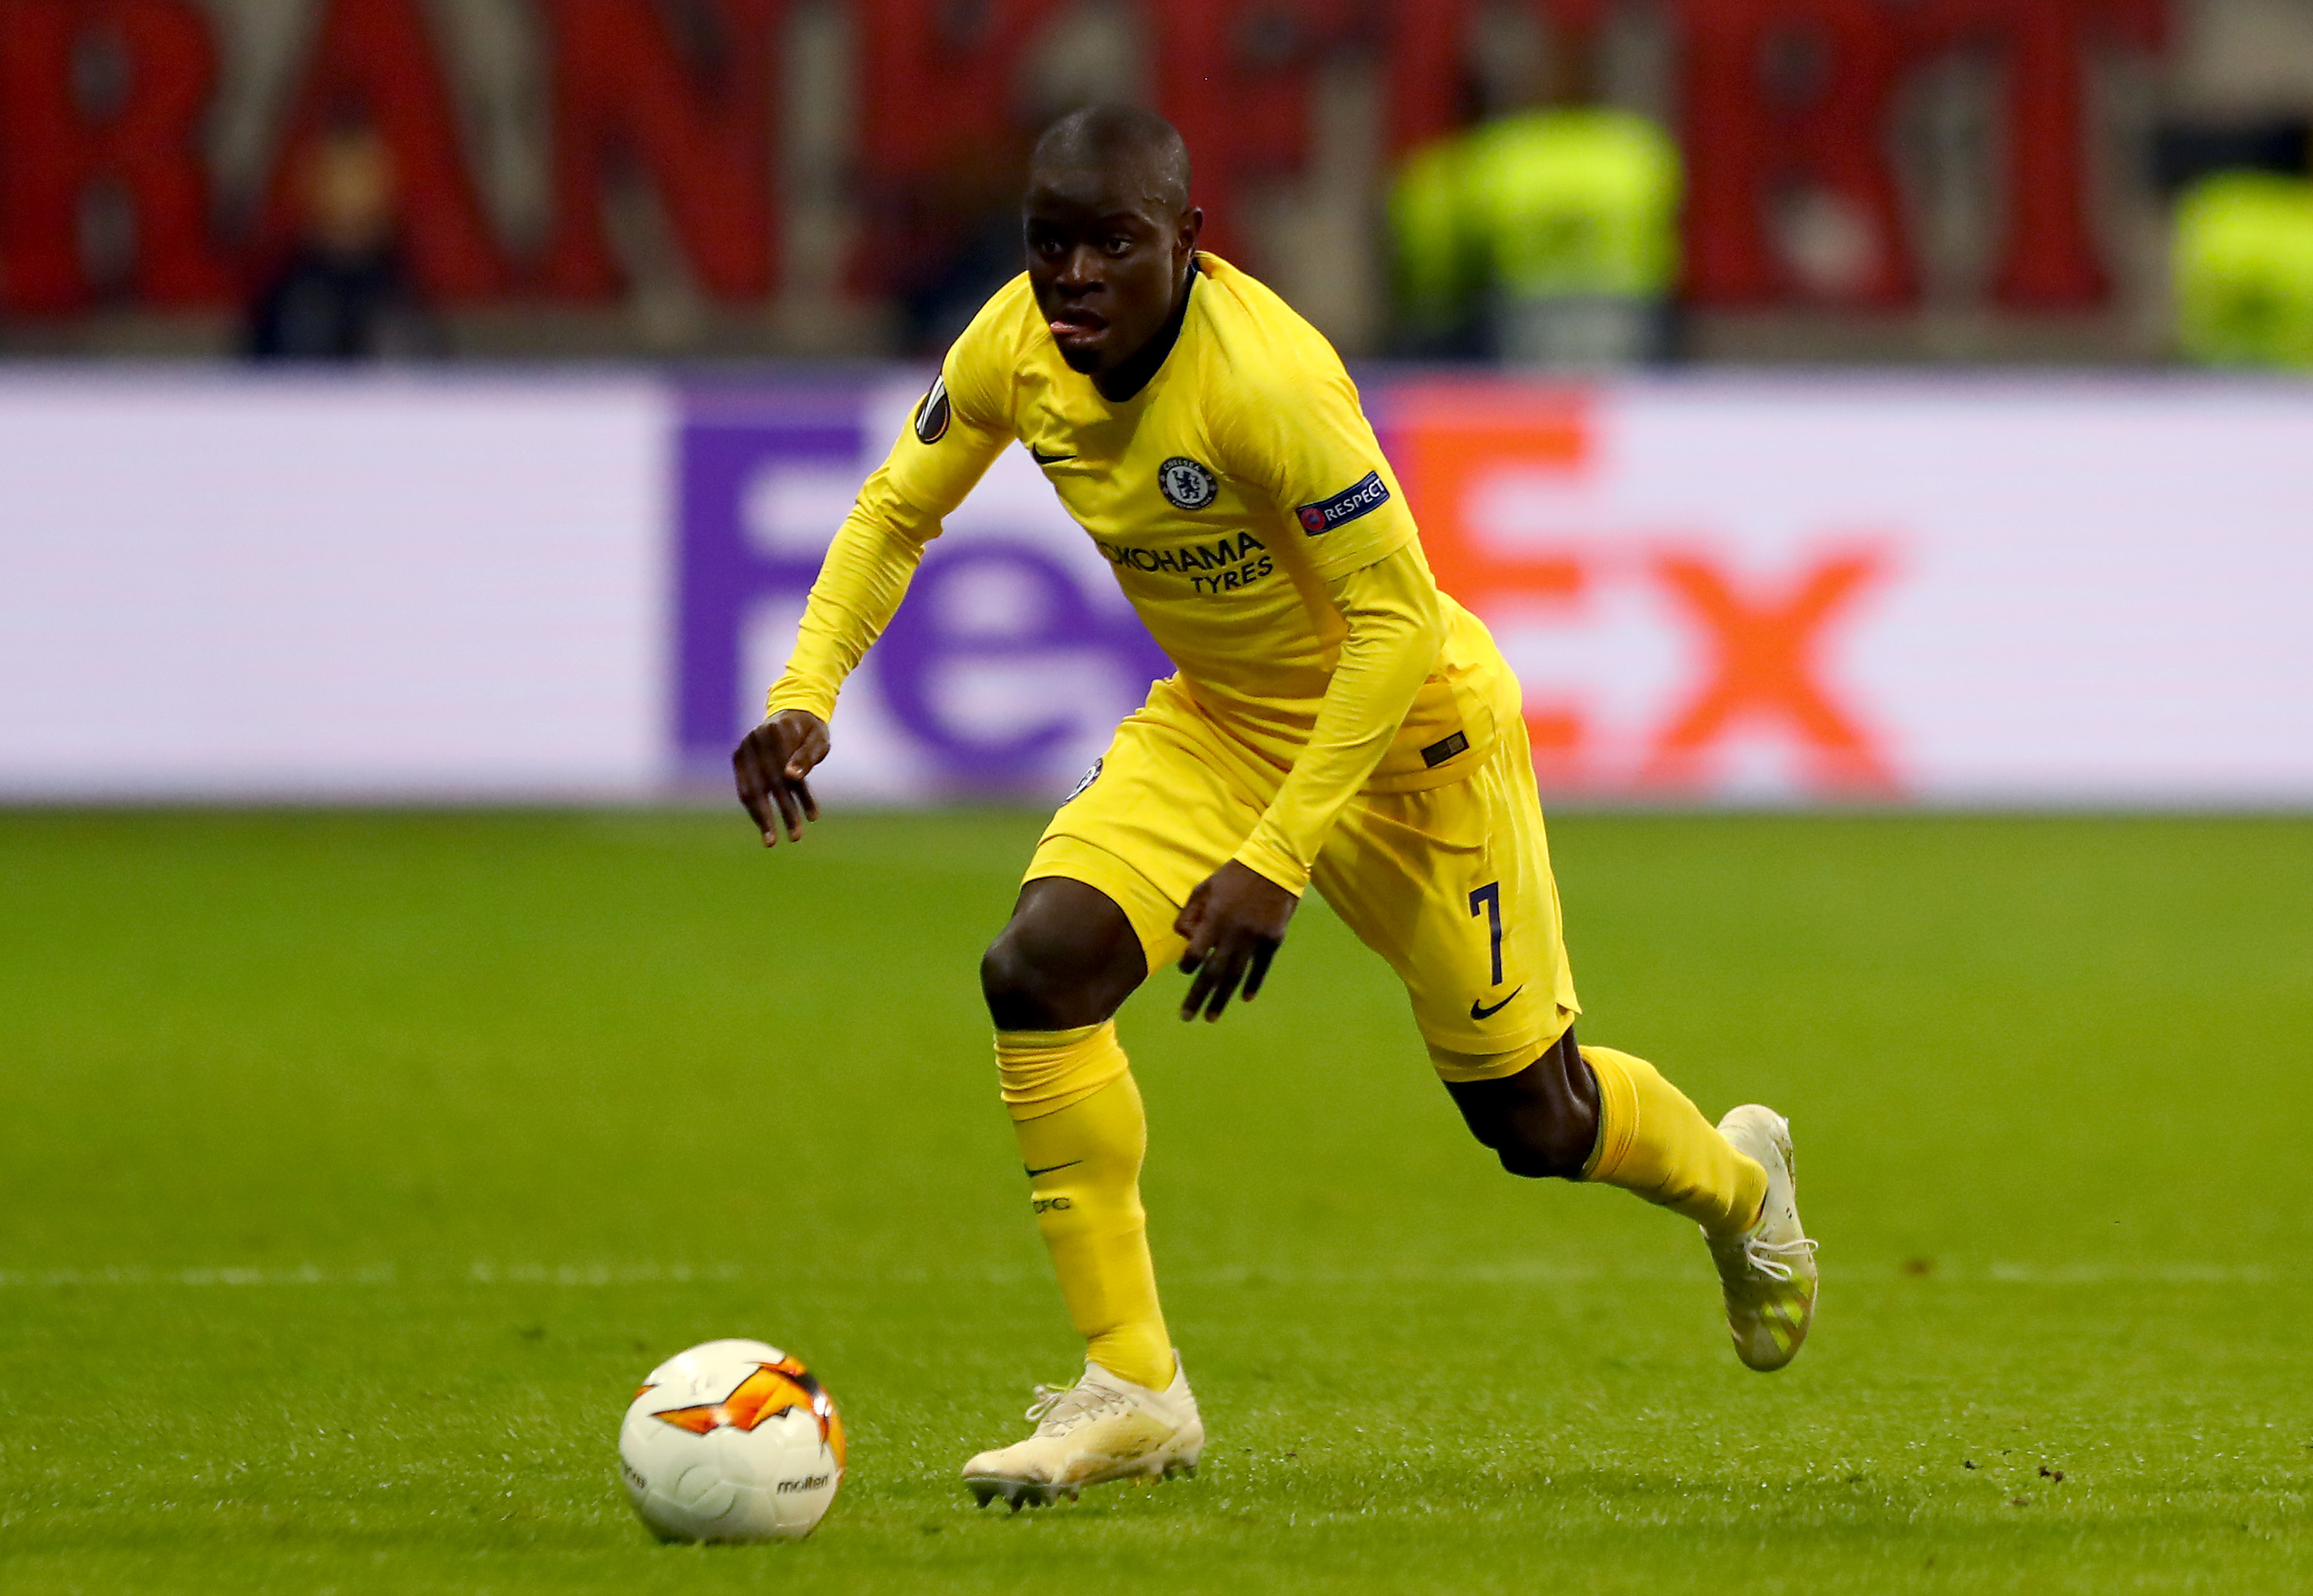 Will Kante resist a big money offer from PSG to remain at Chelsea? (Photo courtesy: AFP/Getty)